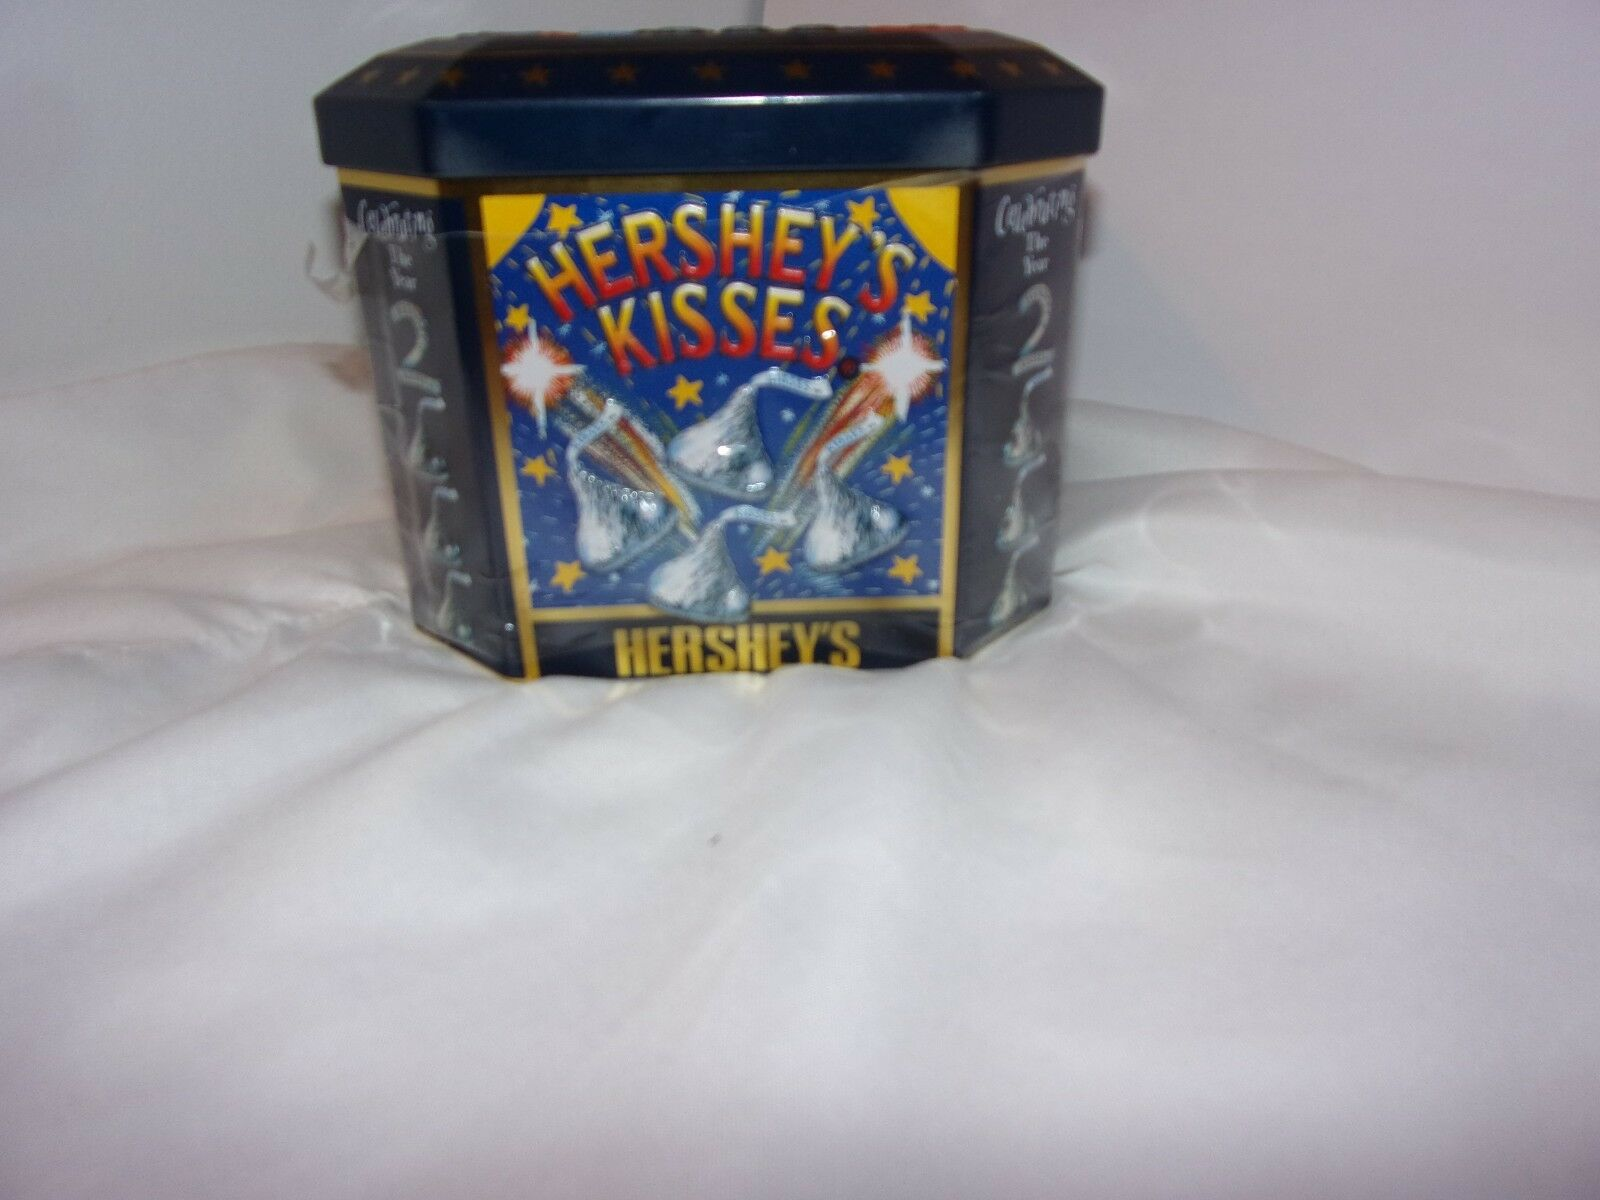 Купить Hershey's - Hershey's Kisses Limited Edition Commemorative Tin Celebrating The Year 2000